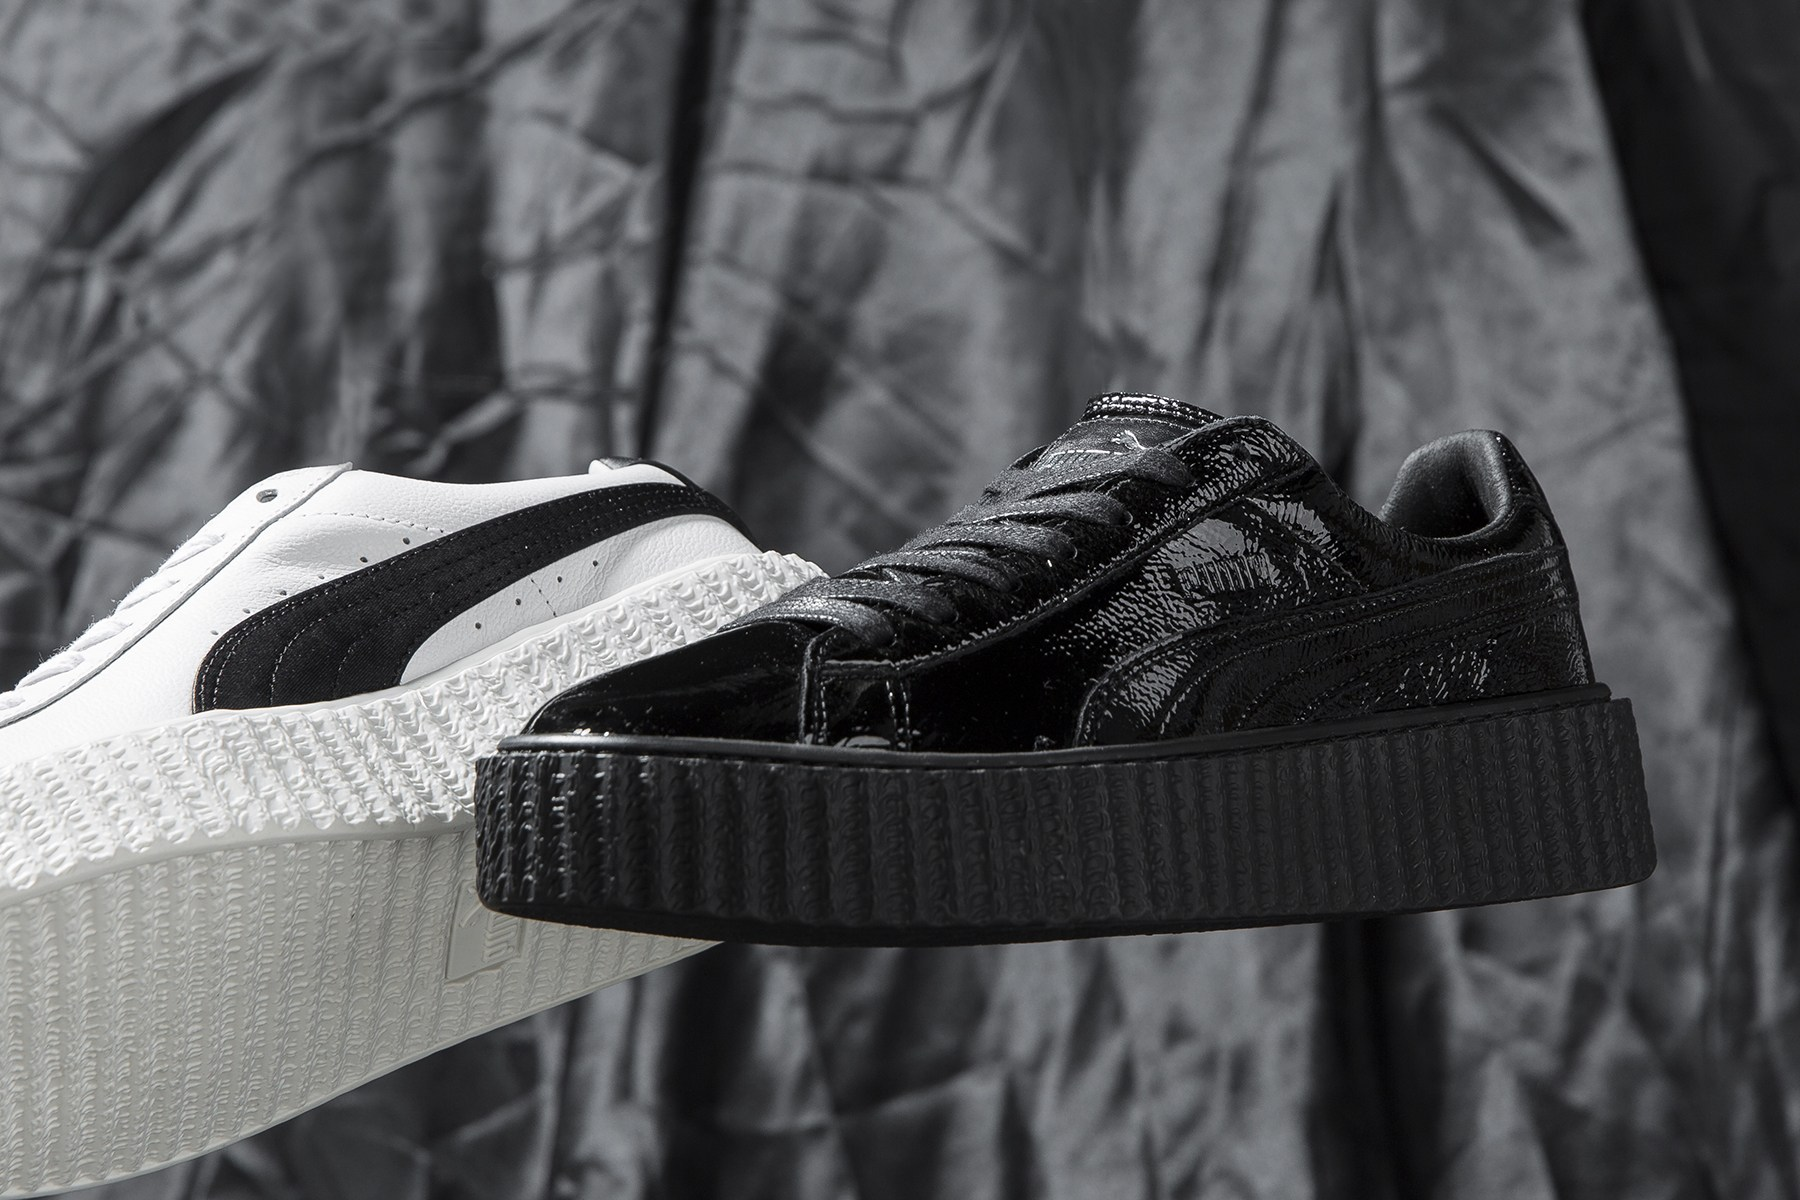 Un premier aperçu de la Fenty PUMA Rihanna Crinkled Leather Creeper